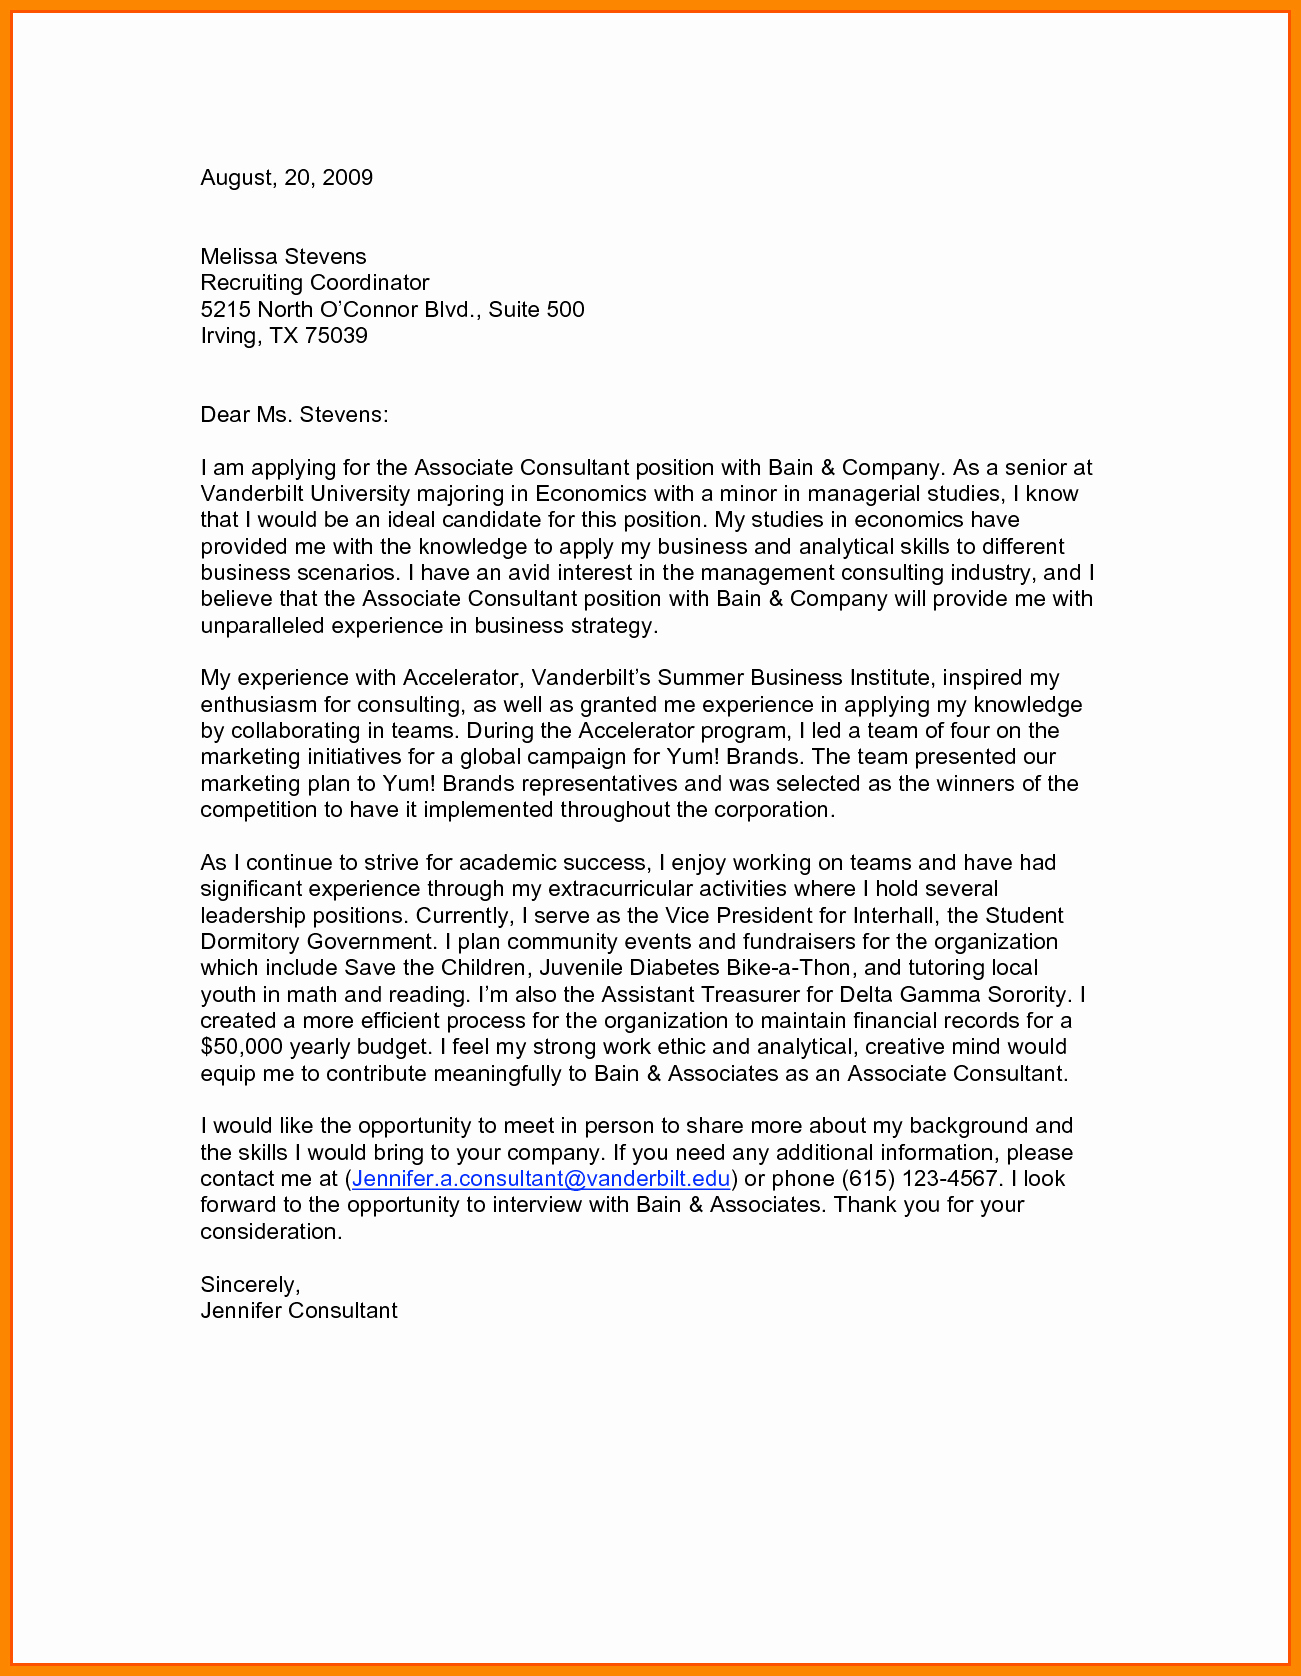 Modern Cover Letter Template - Cover Letters for Resumes Free Fresh Od Consultant Cover Letter